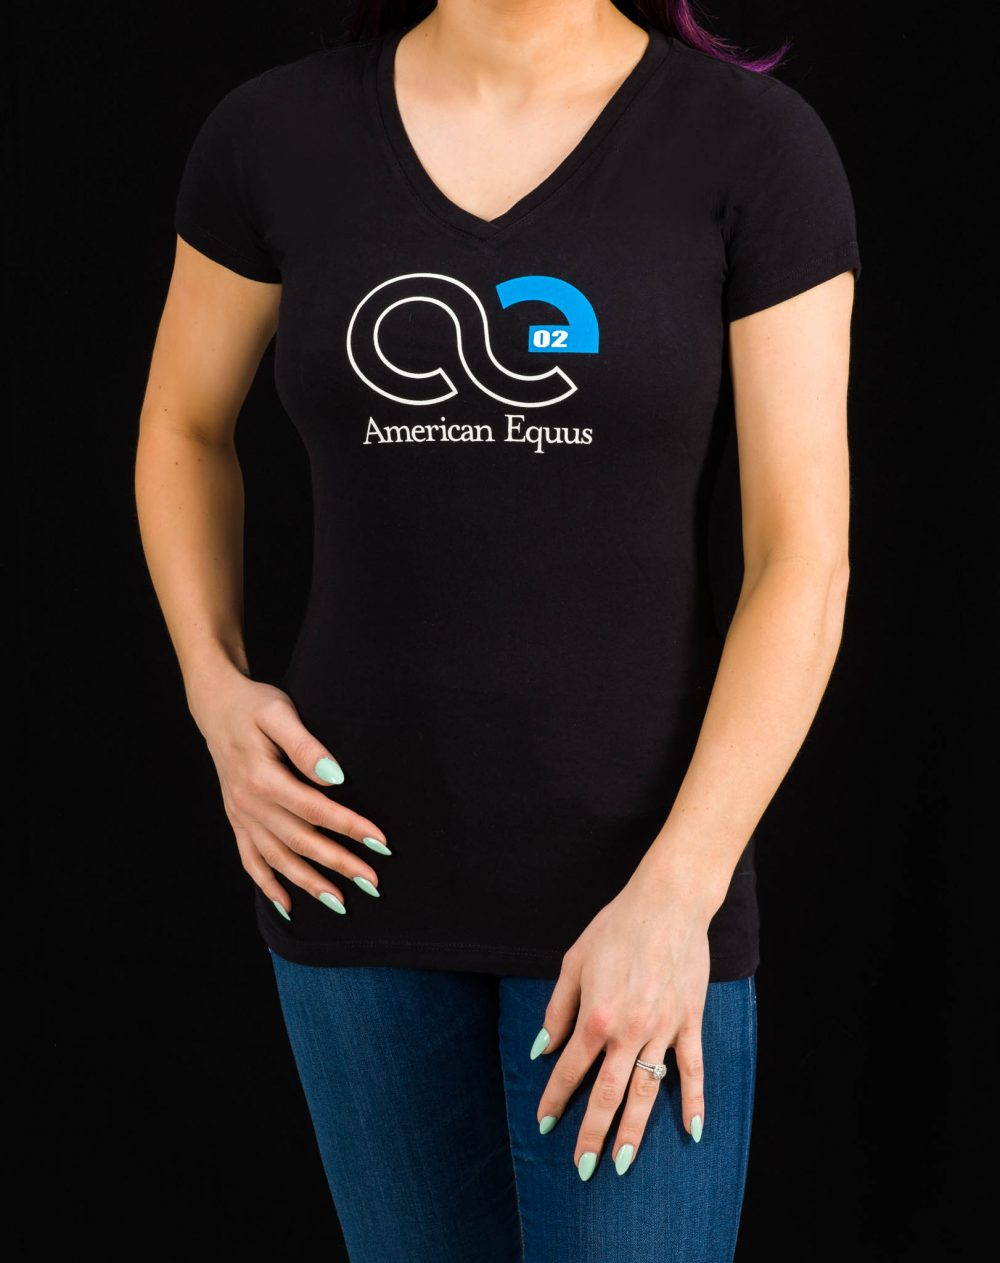 American Equus Women's V-Neck T-Shirt